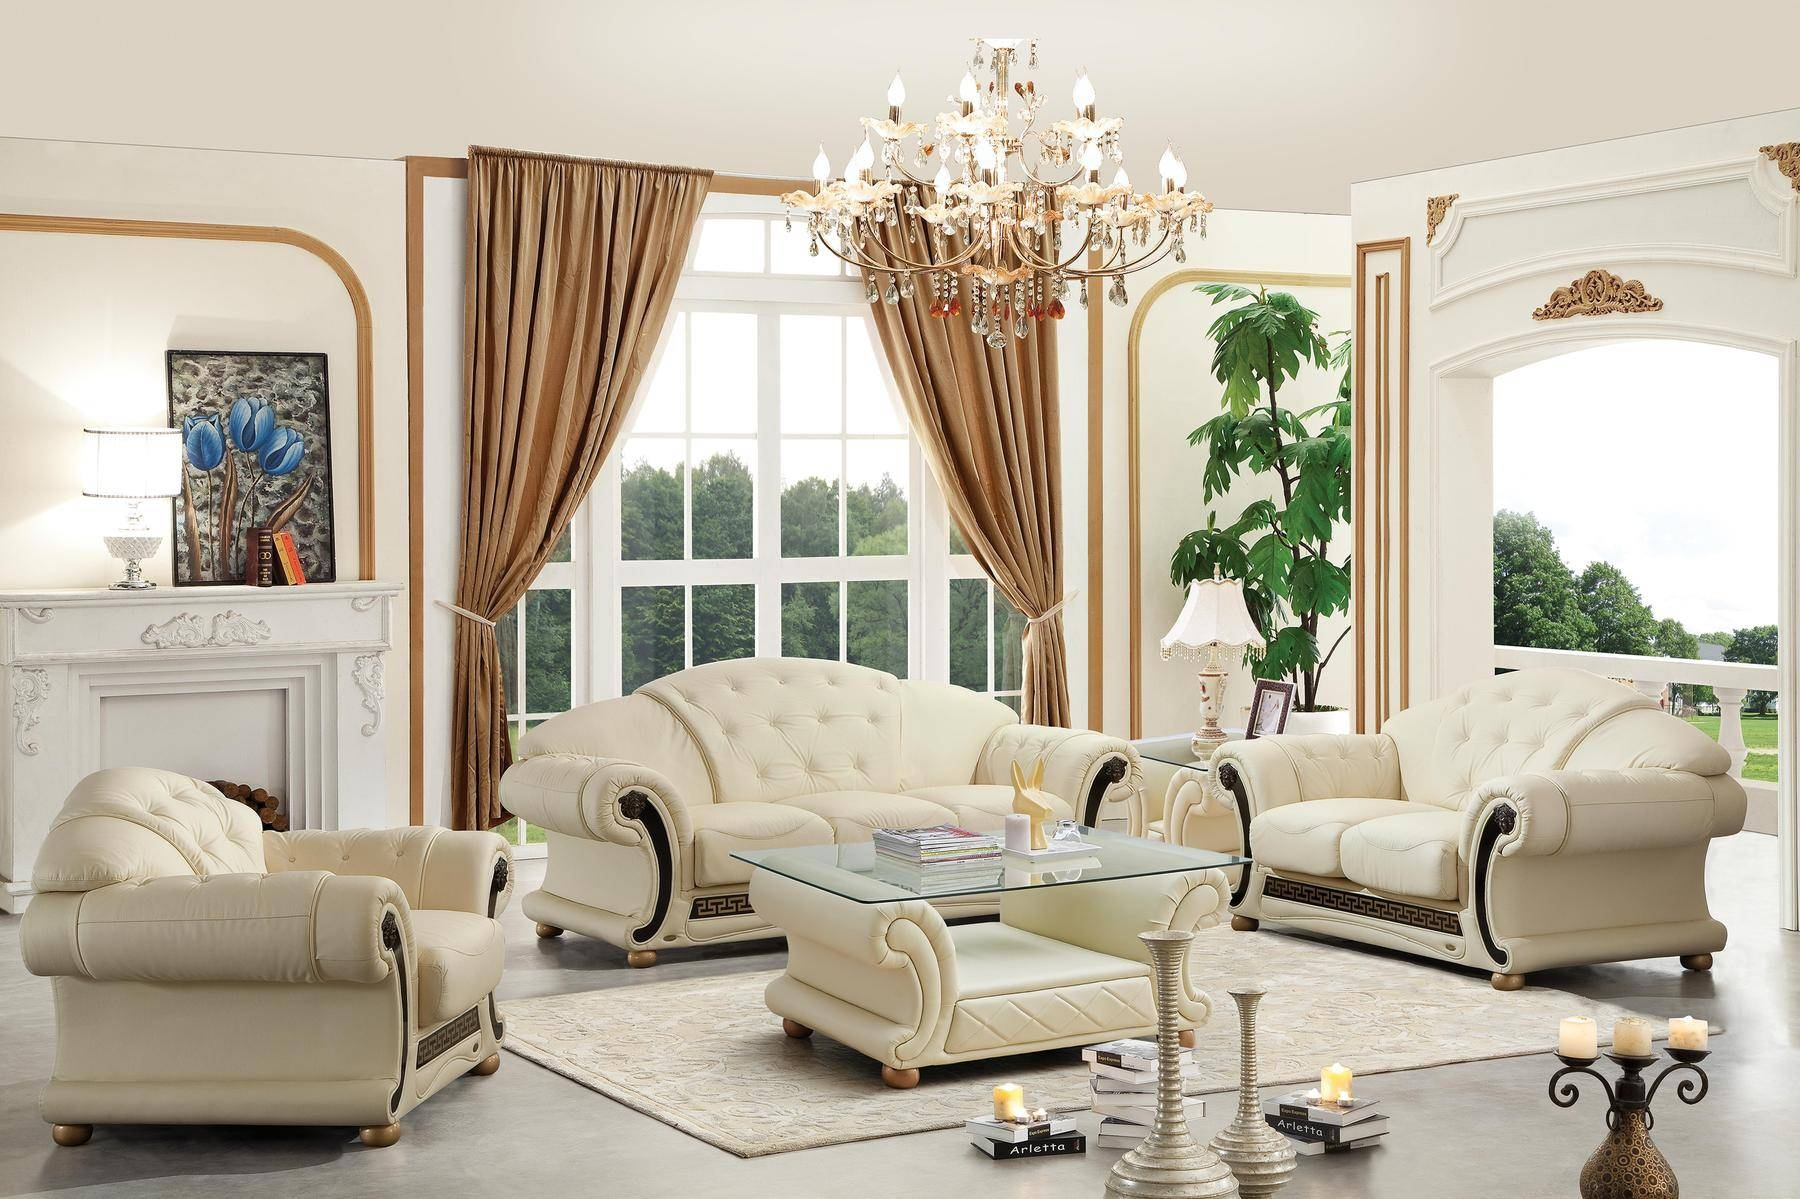 Versace Ivory Sofa Versace Esf Furniture Leather Sofas At Comfyco  Throughout Ivory Leather Sofas (Image